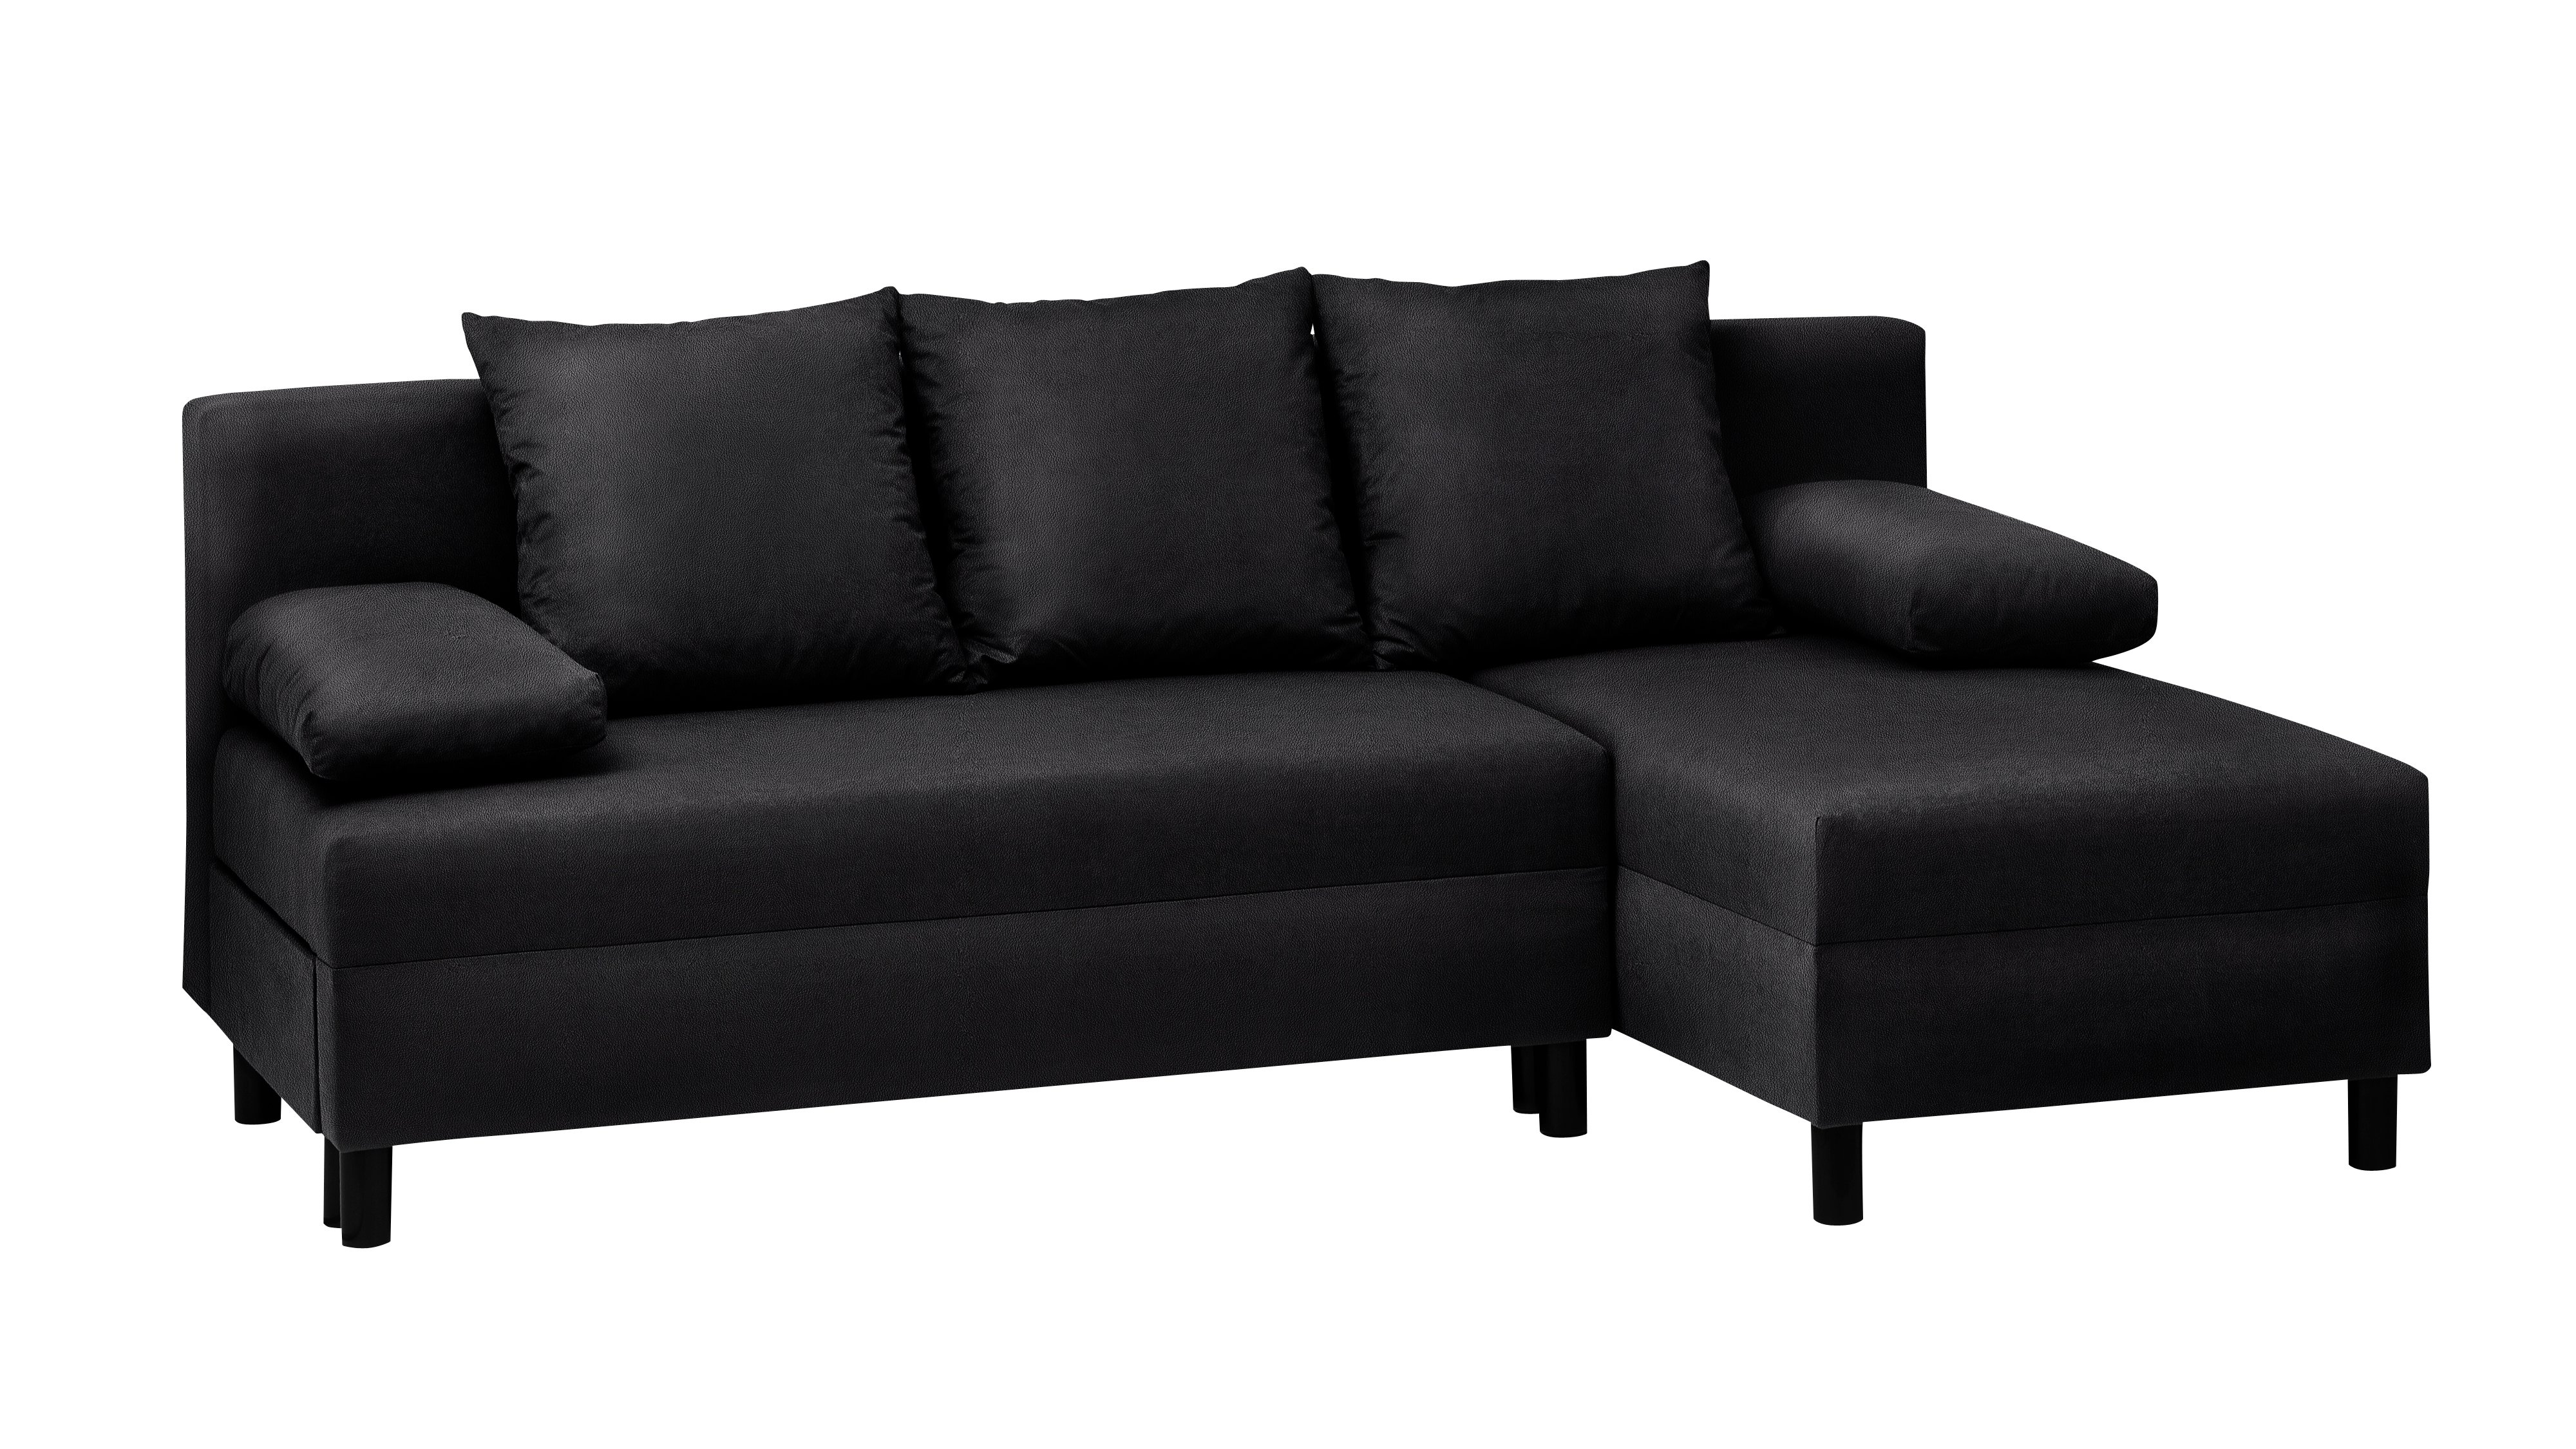 Seating three people comfortably in sofa mode it has a contemporary design that will look great in